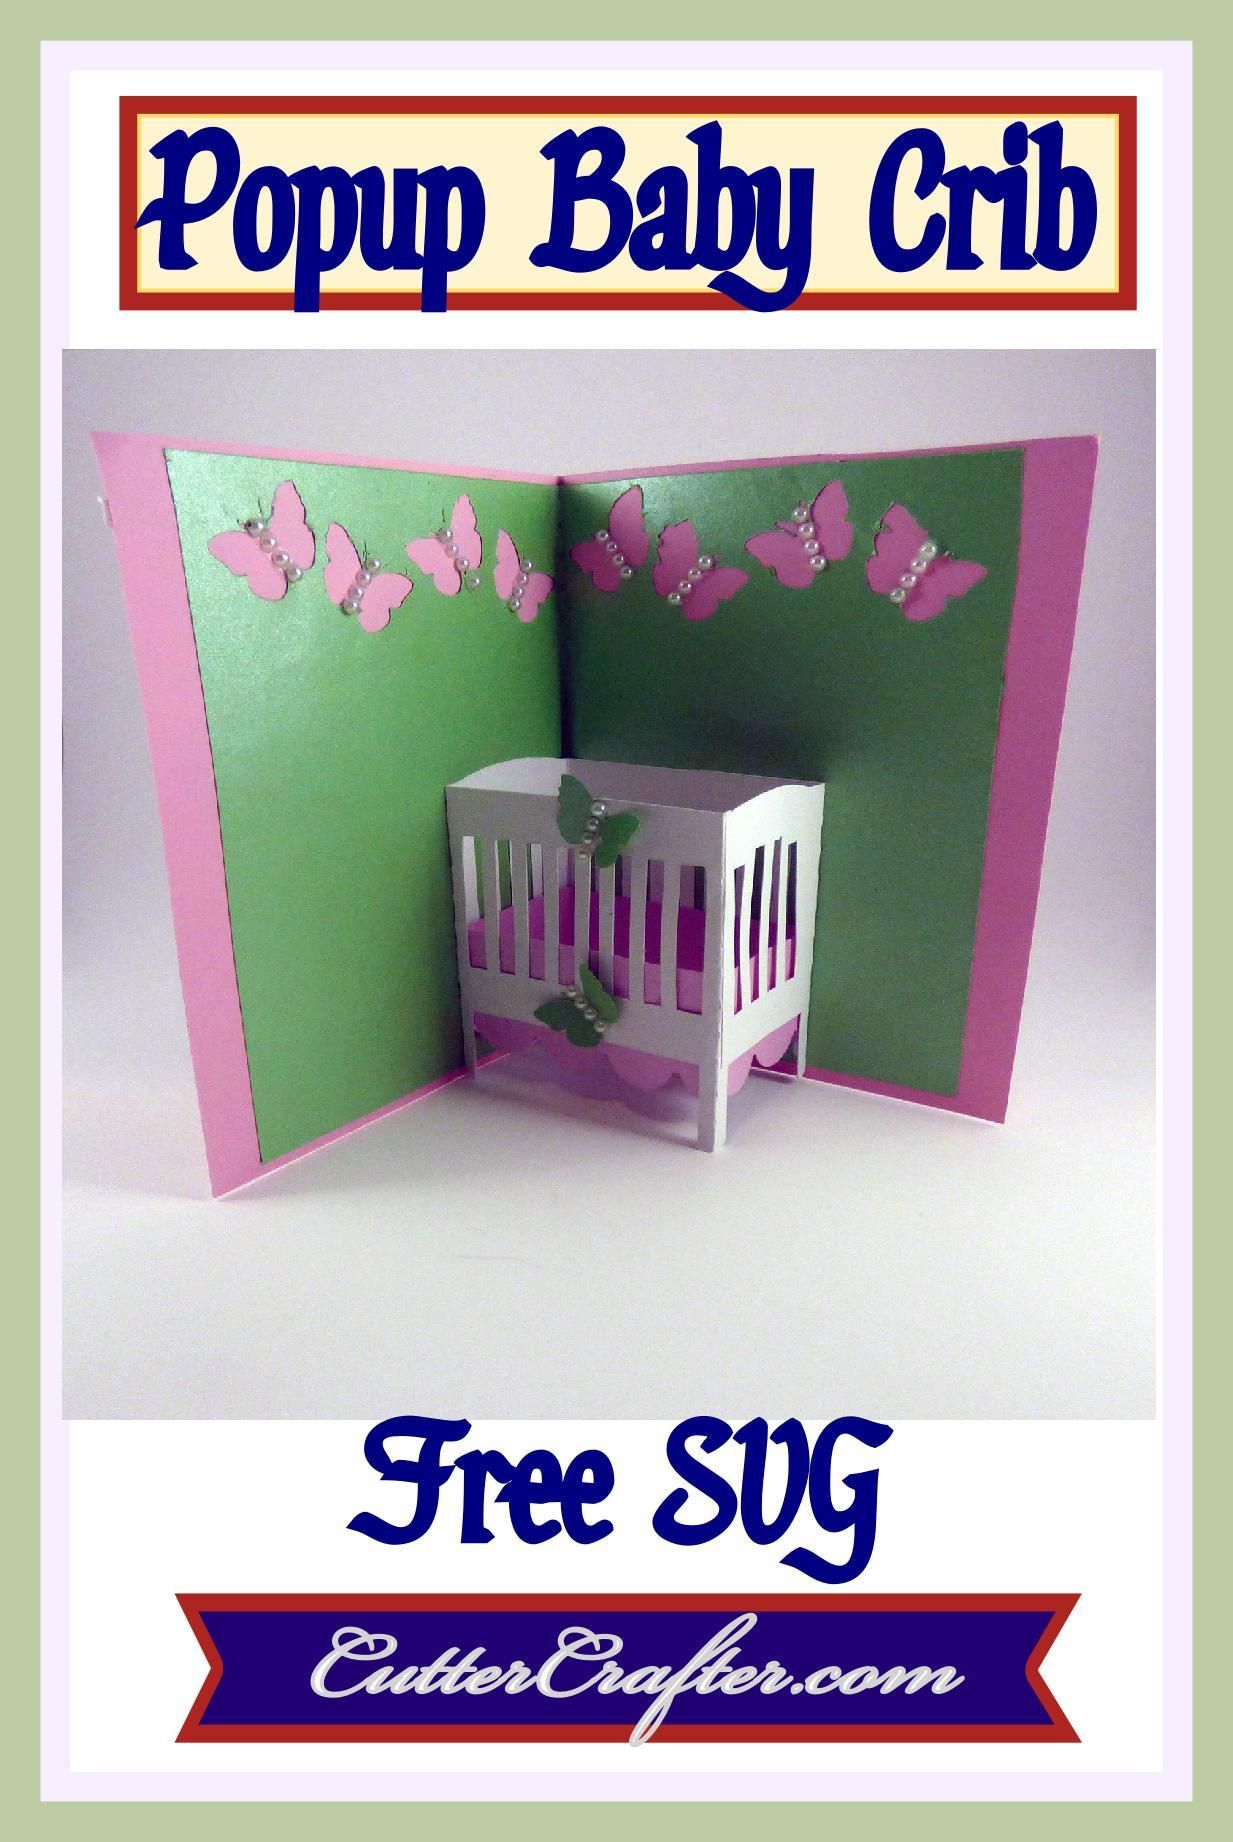 Baby Crib Popup Card FREE SVG file available at